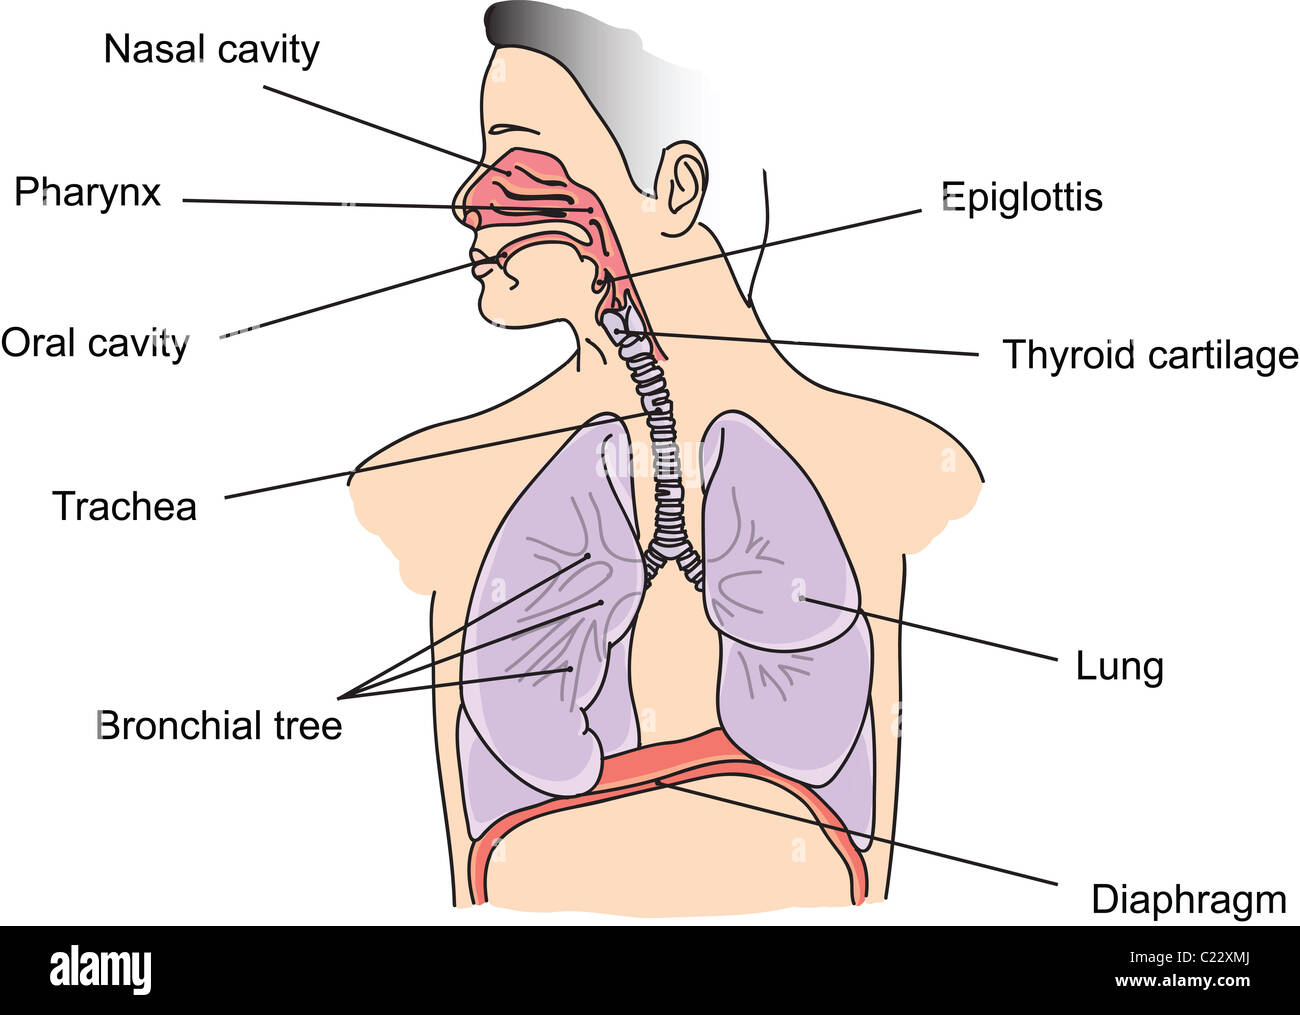 Structure of human lungs and respiratory system illustration stock structure of human lungs and respiratory system illustration ccuart Images